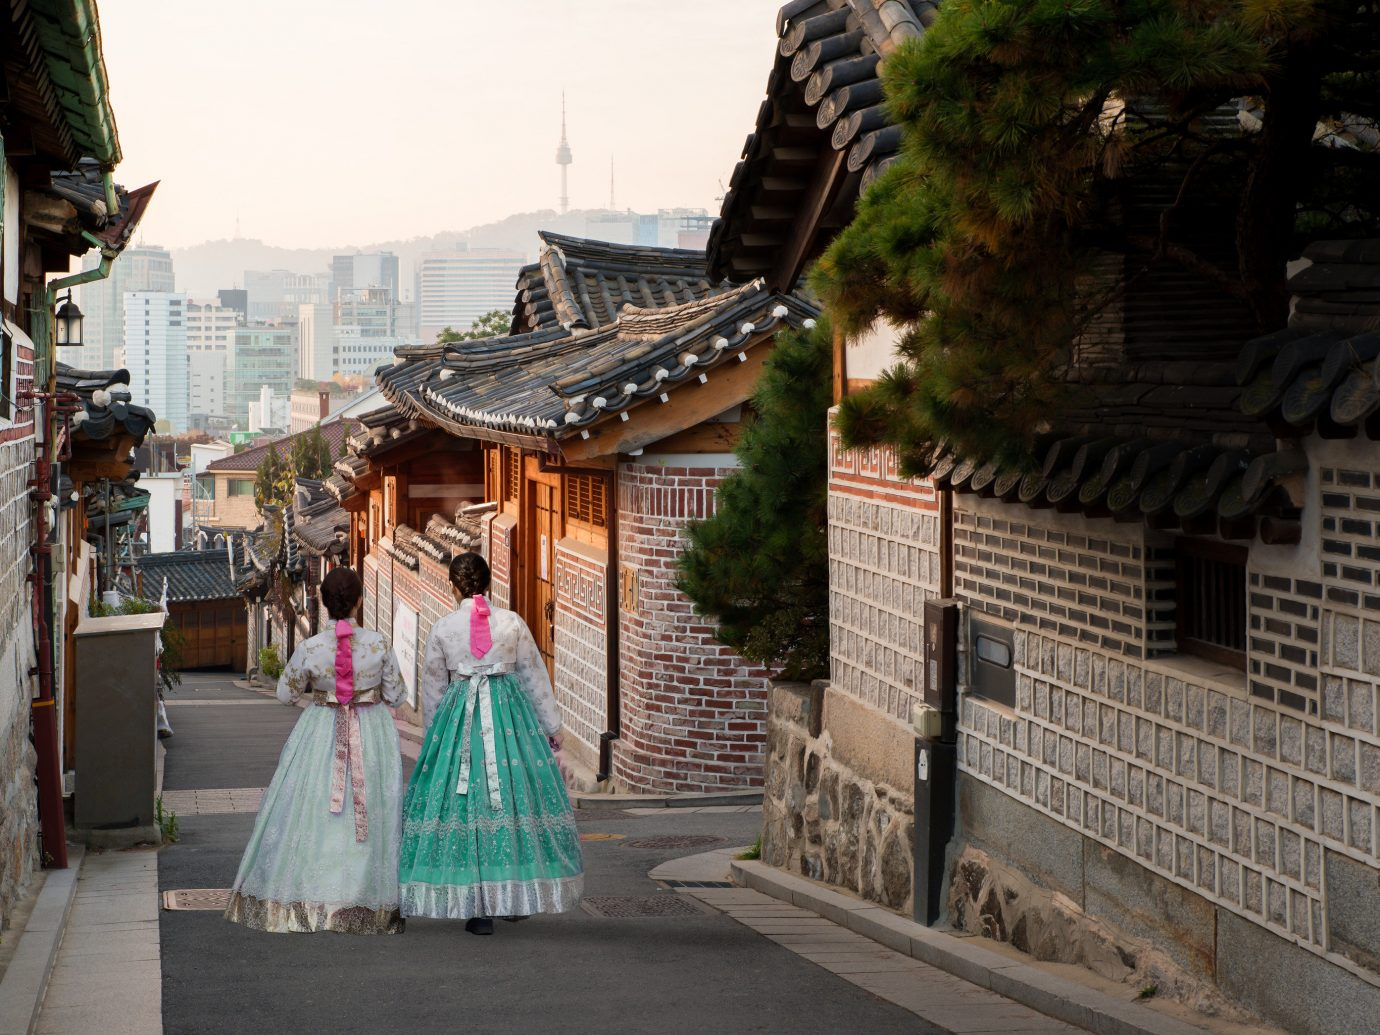 Seoul Trip Ideas infrastructure road temple street tourism City travel building tree vacation